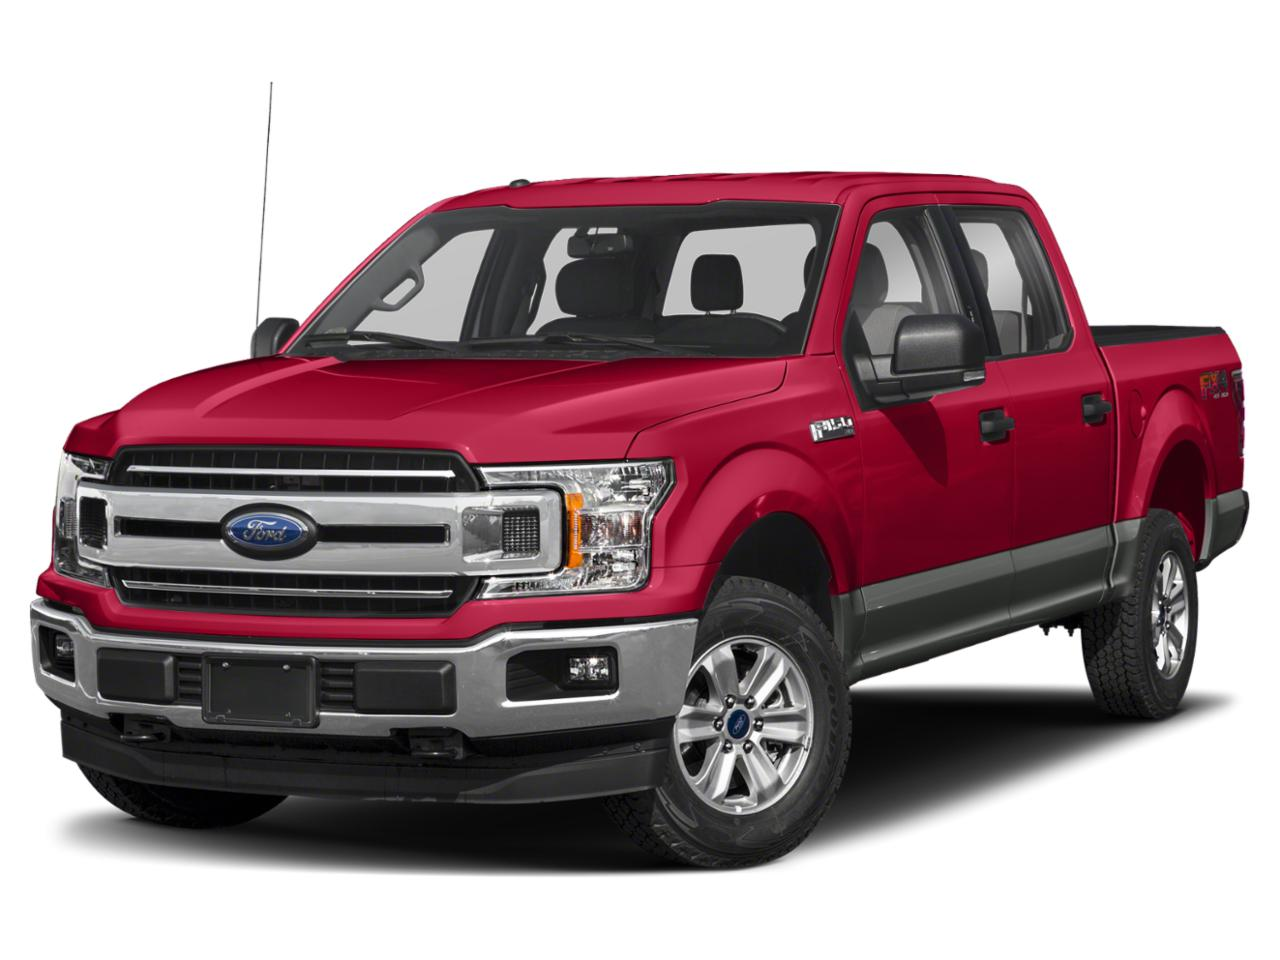 Rapid Red Metallic Tinted Clearcoat 2020 Ford F-150 XLT Crew Cab Pickup Durham NC